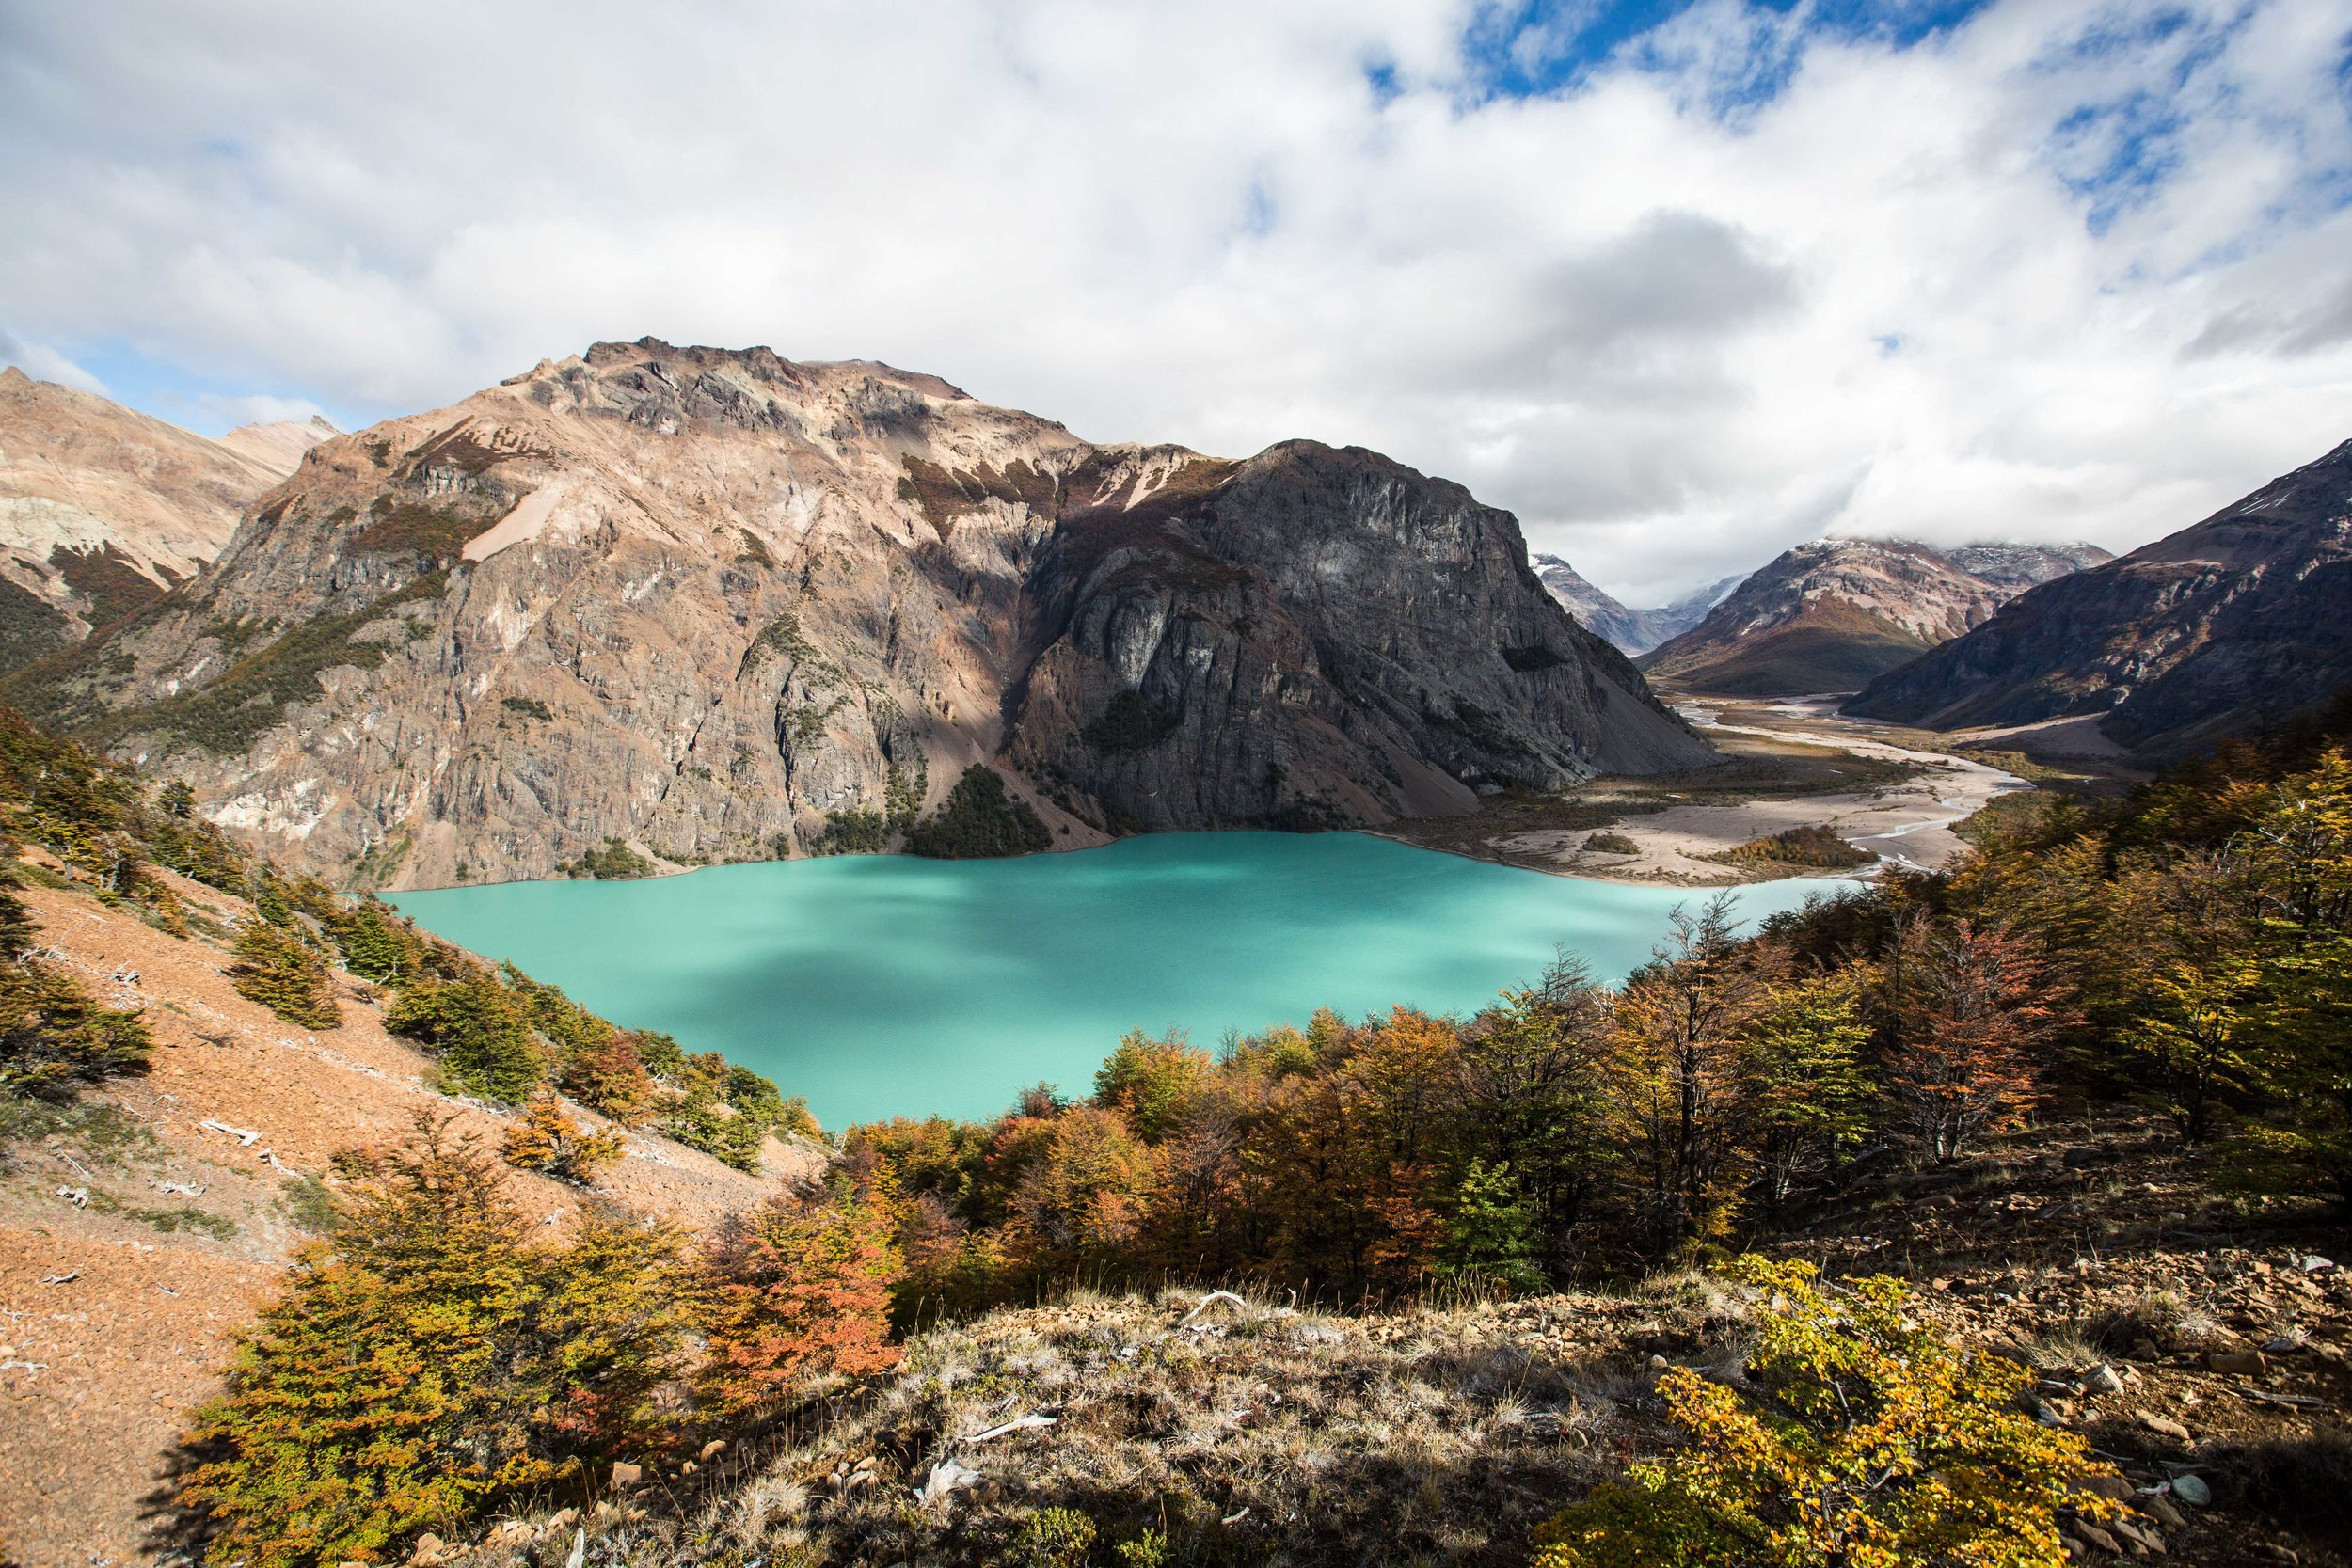 The unbelievable color of Lago Verde in Jeinimeni National Reserve, part of the future Patagonia National Park